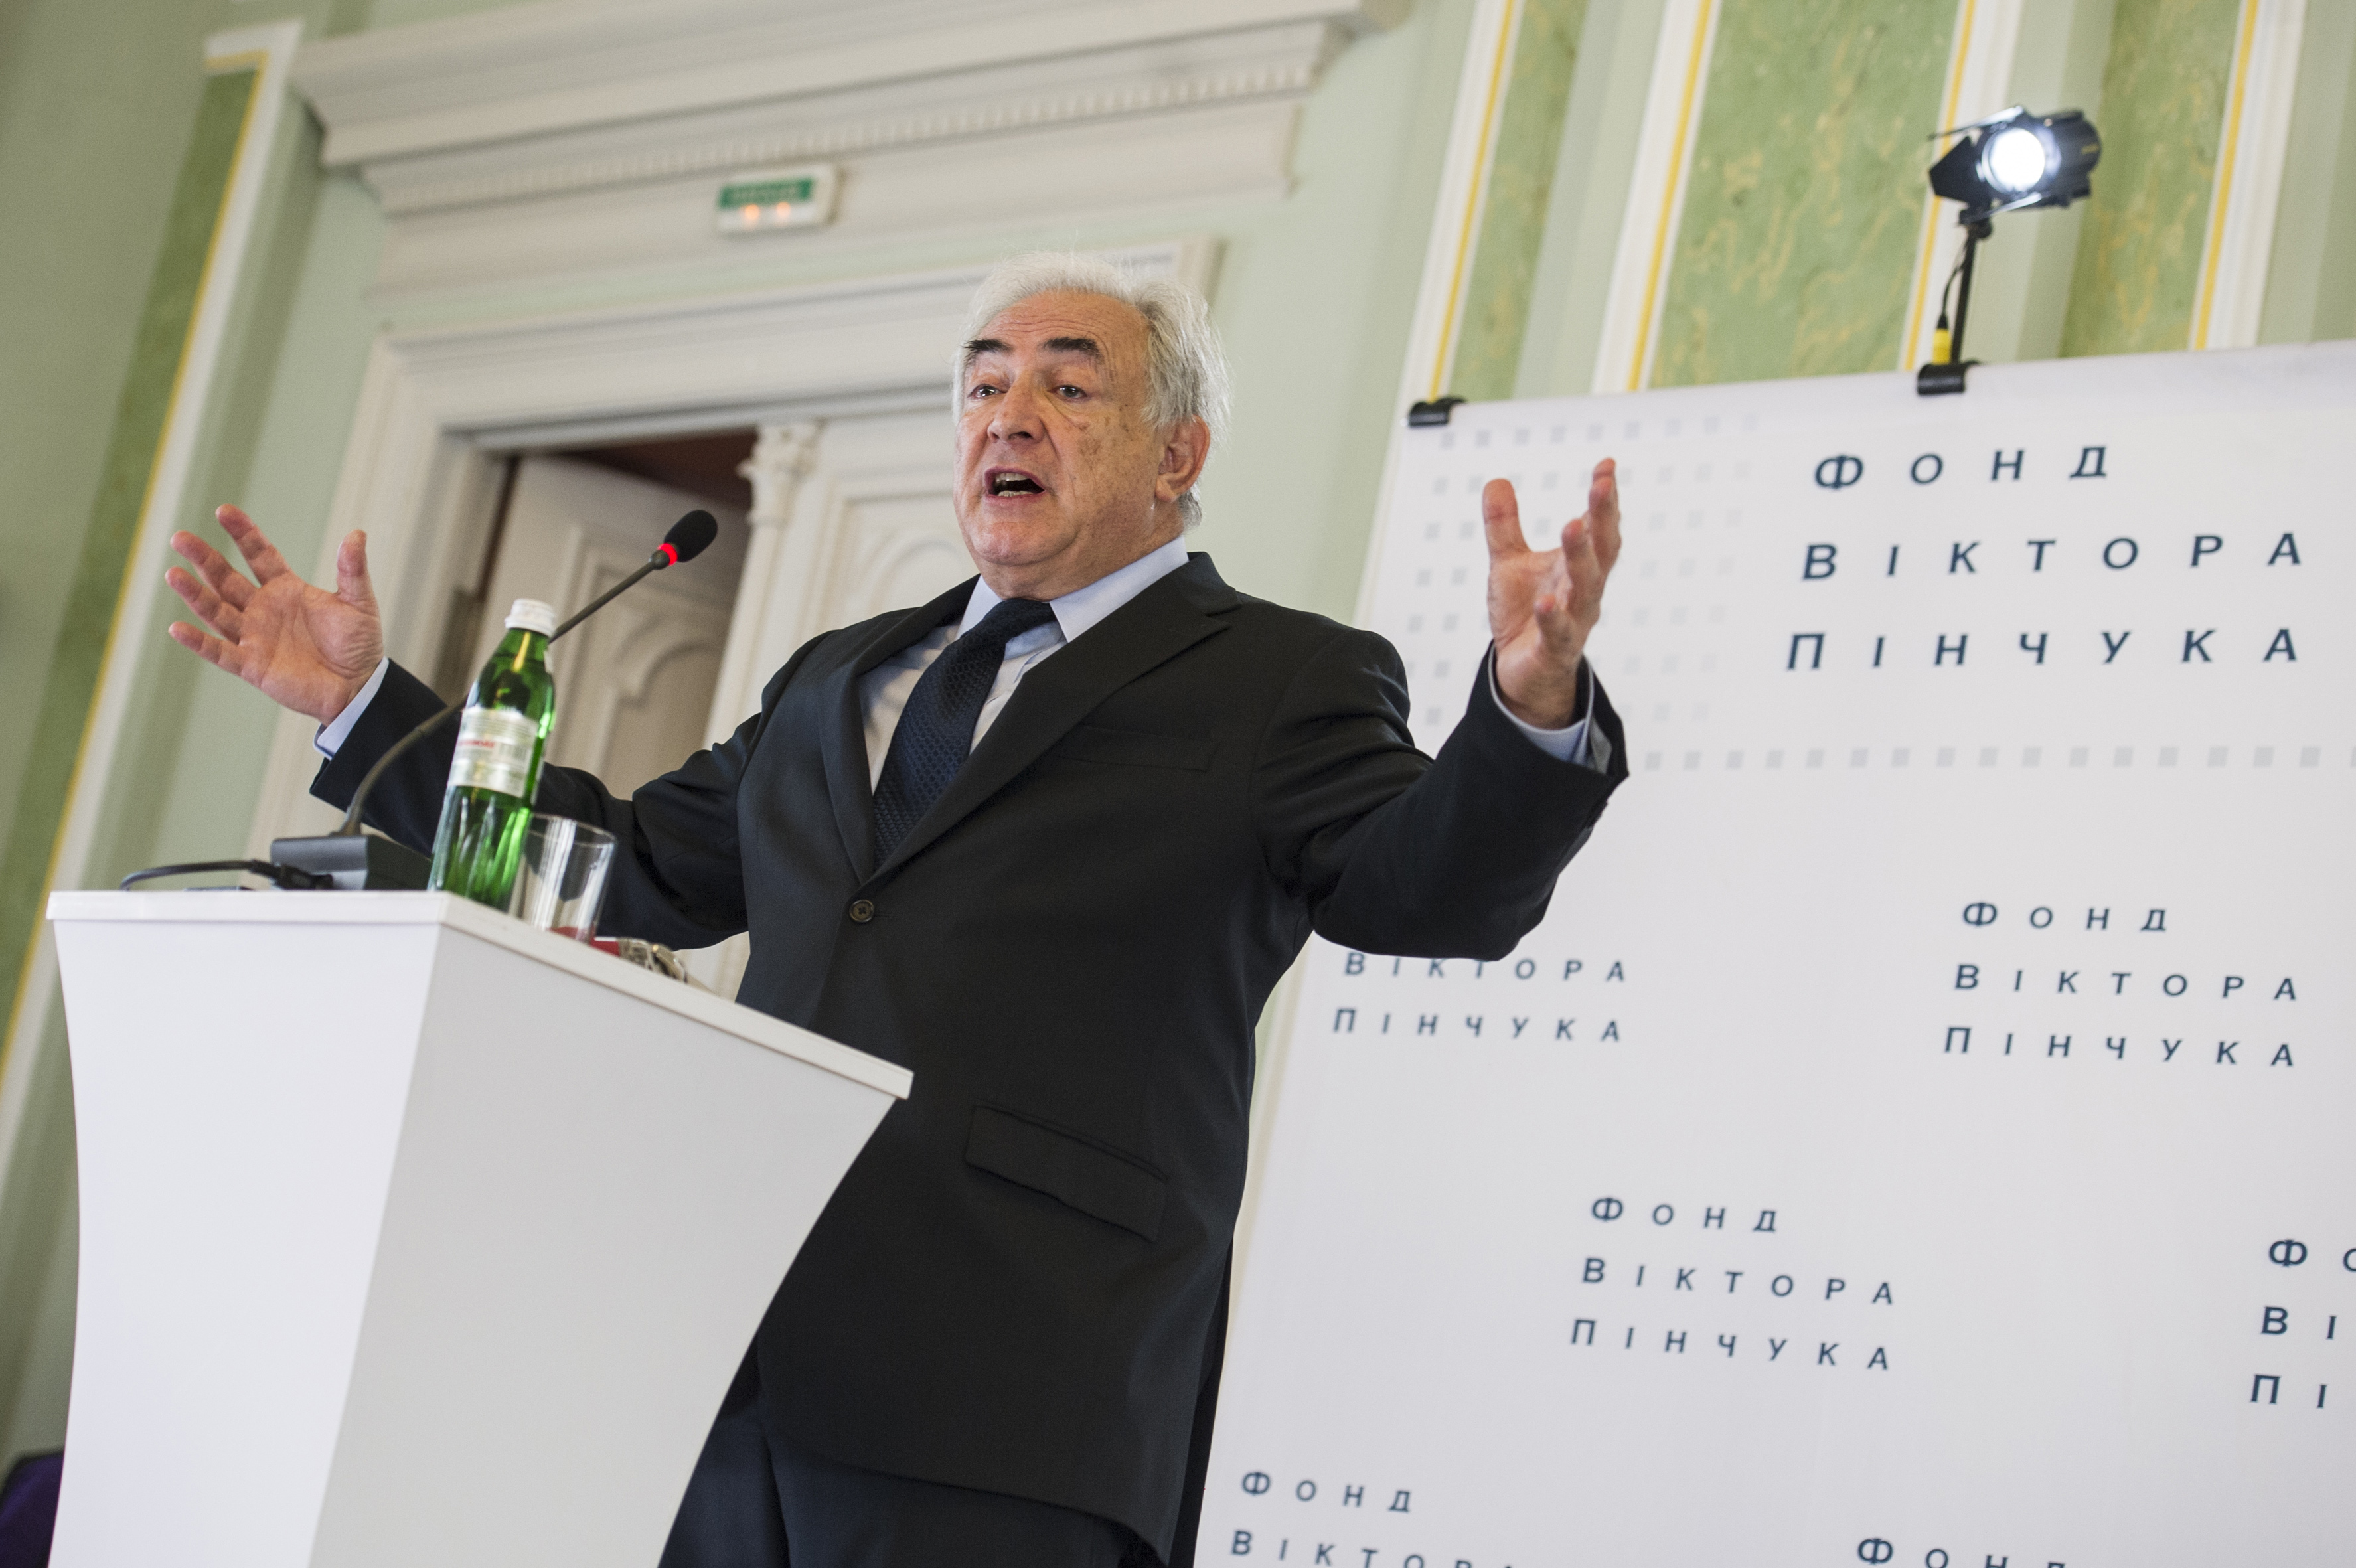 Public Lecture featuring Dominique Strauss-Kahn